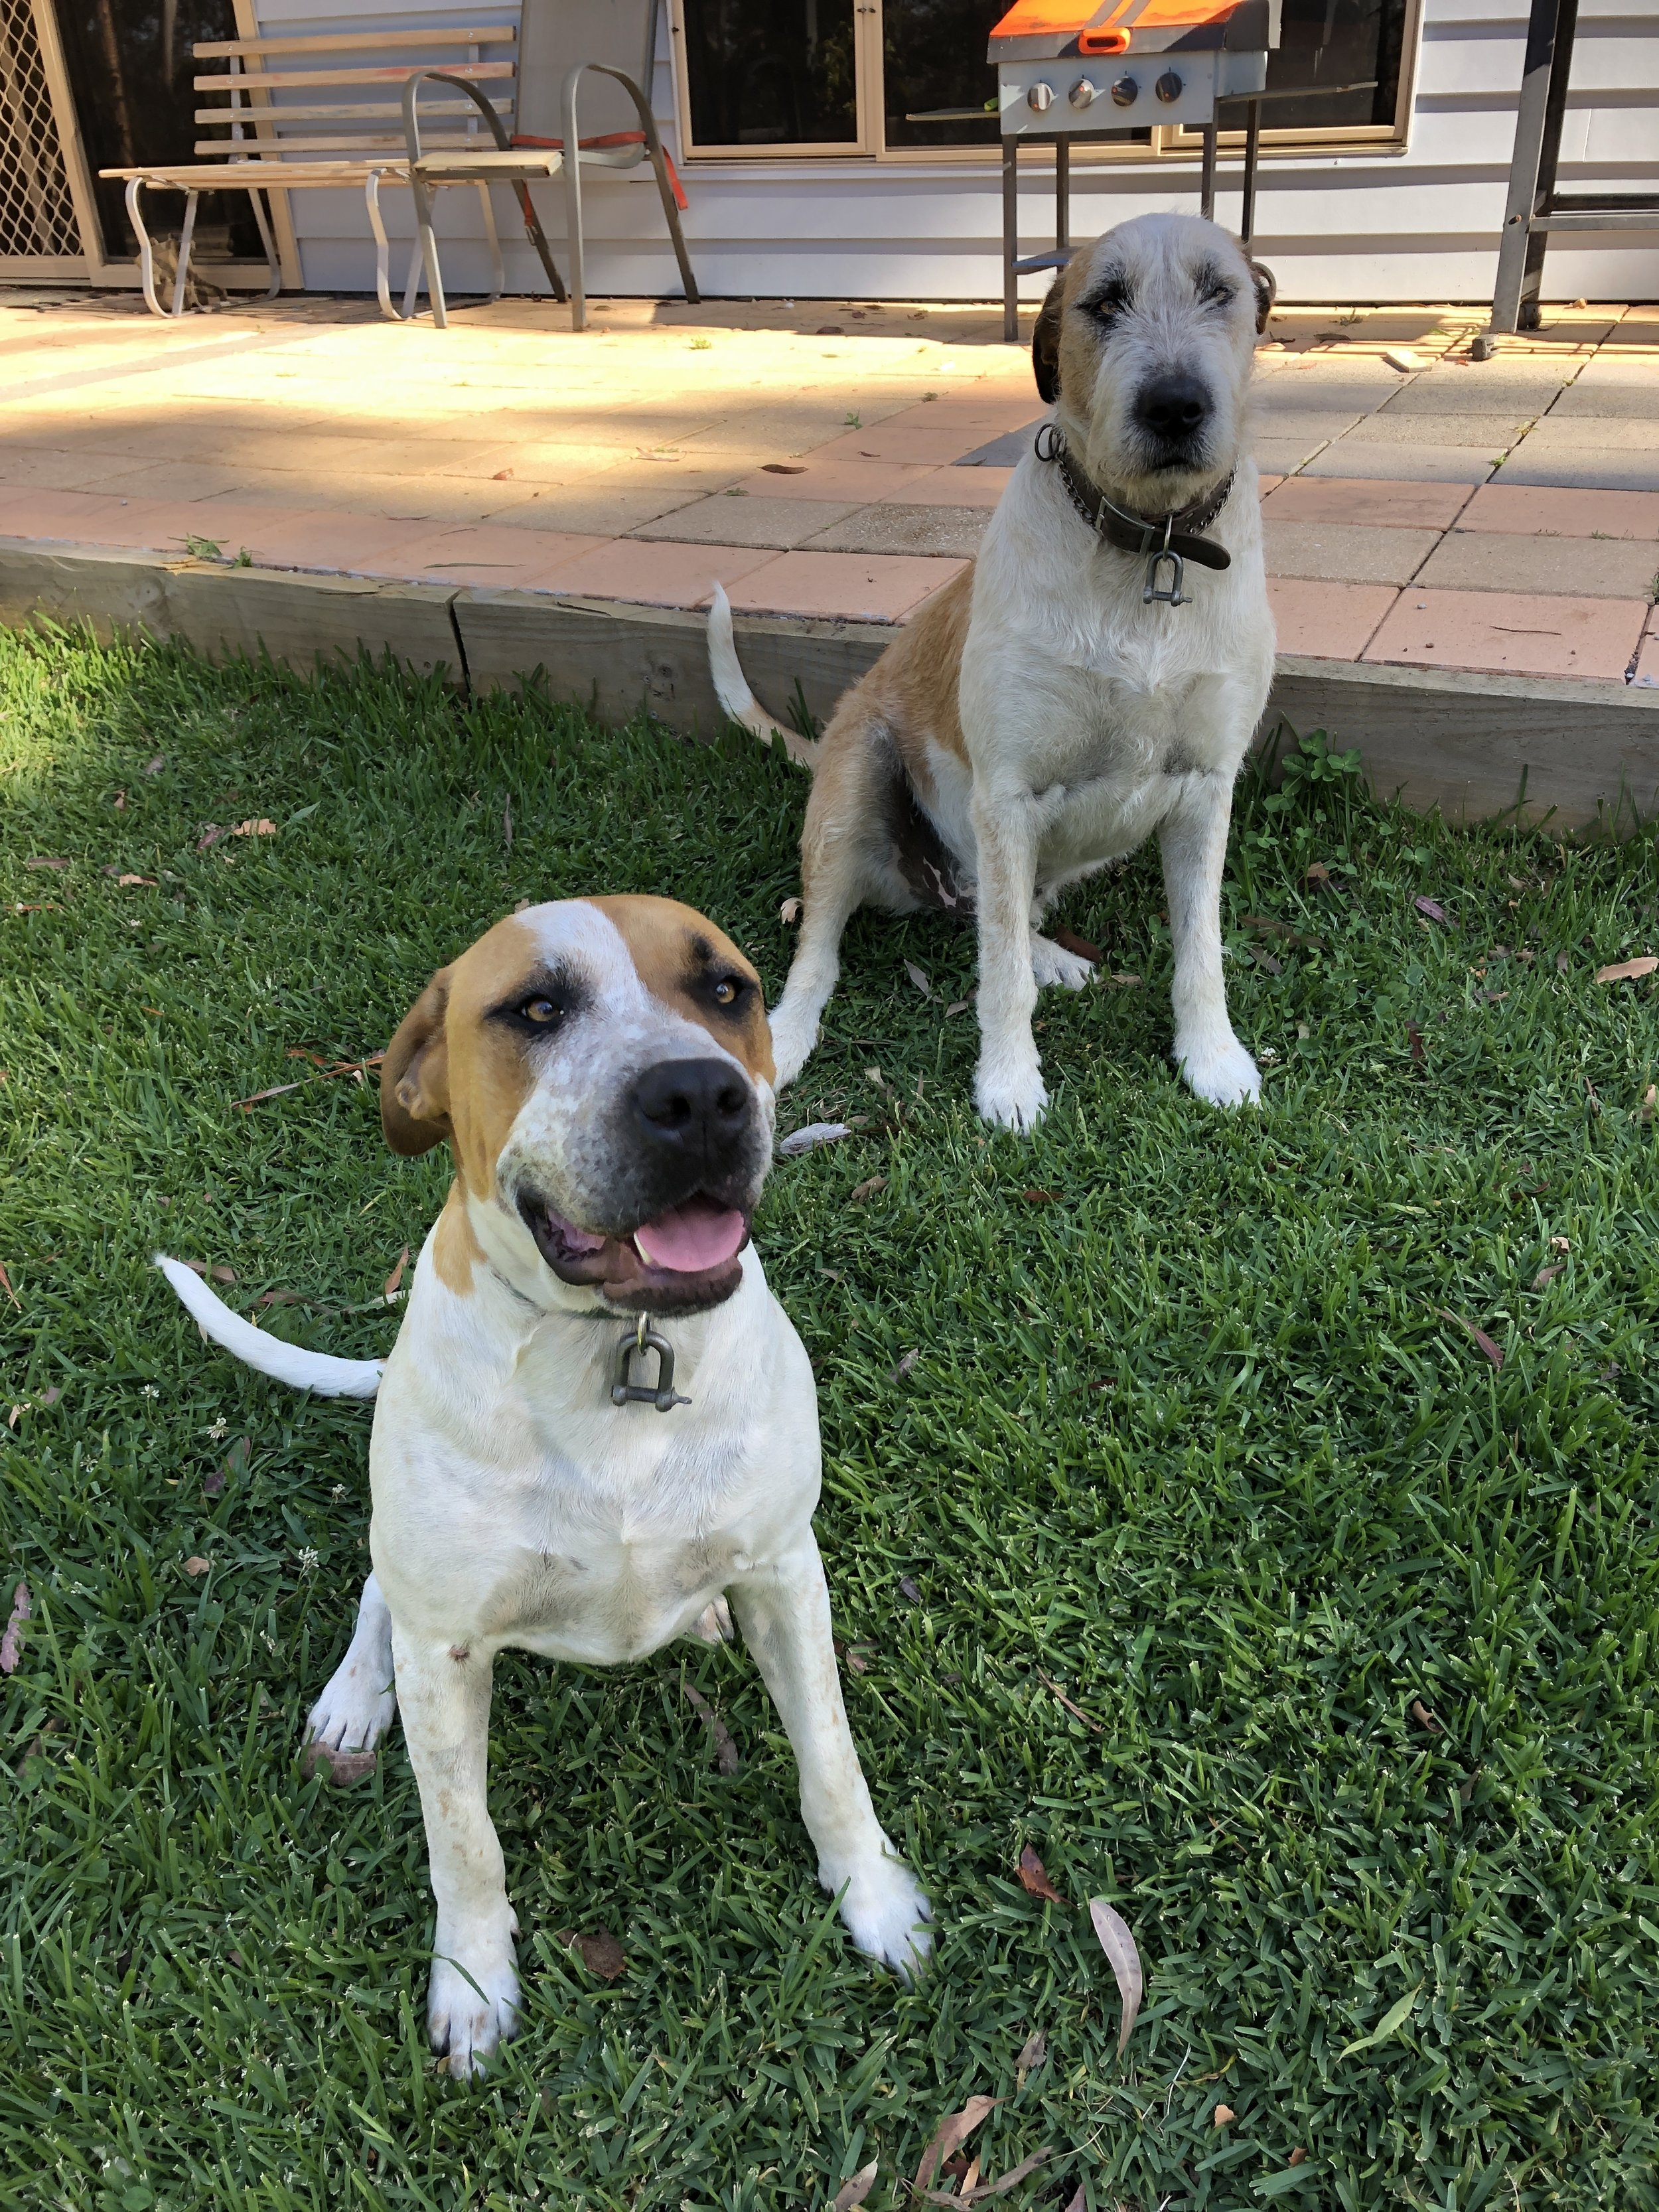 Sitting for Petey, and Spot the dogs, Tom Tom the cat and 10 chickens at Ourimbah, NSW, Australia, November 2018 for 4 days -